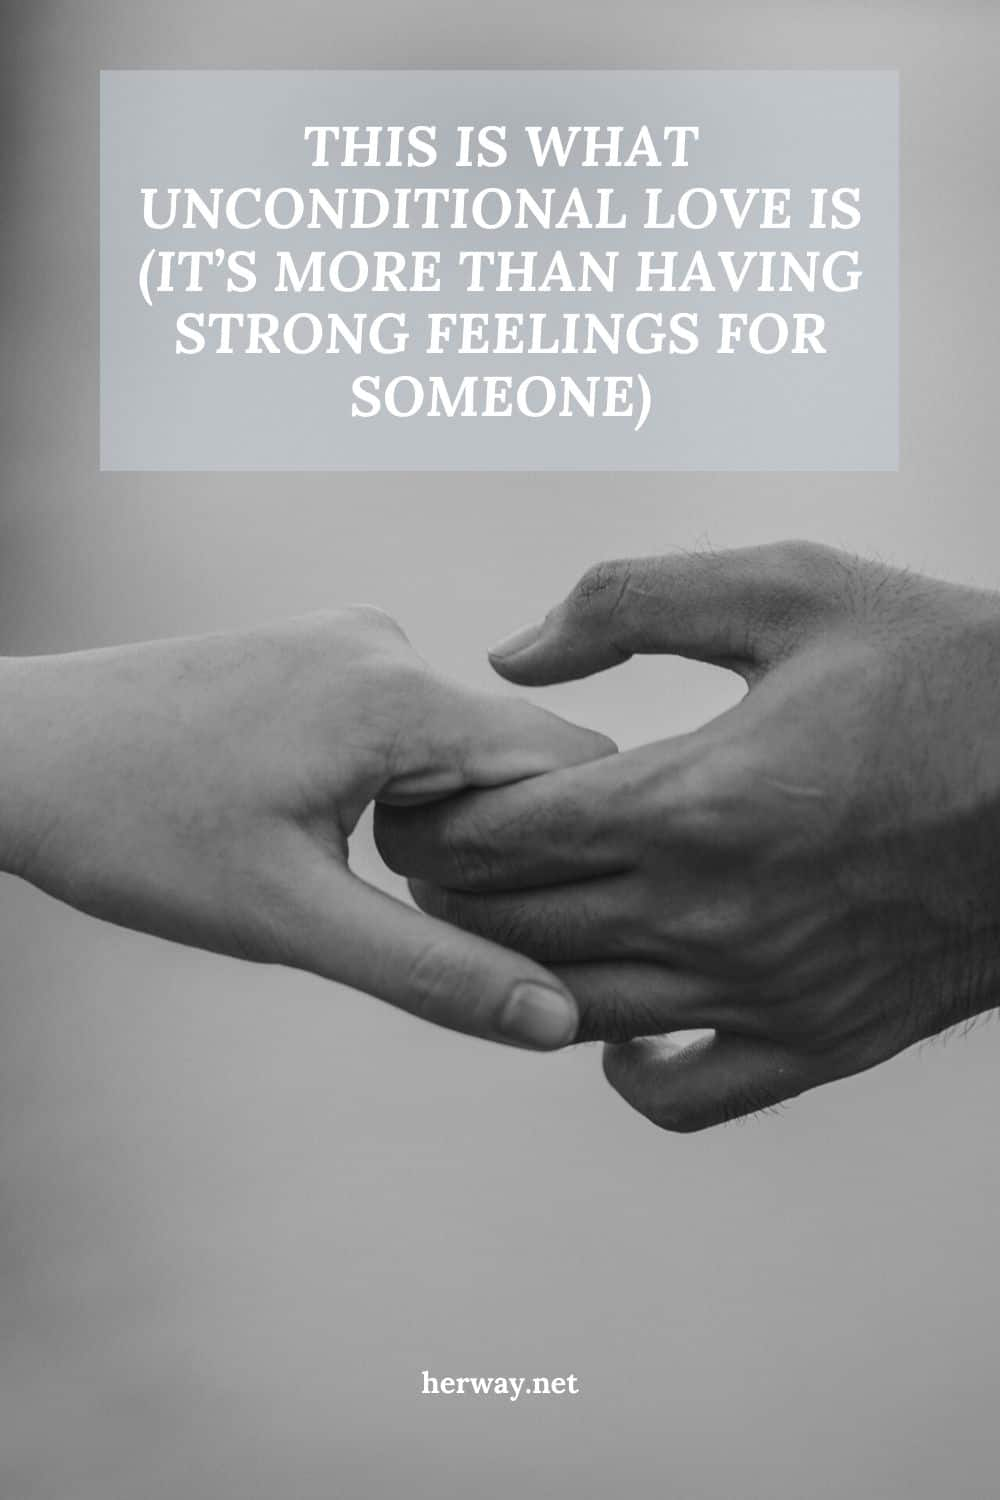 This is What Unconditional Love Is (It's More Than Having Strong Feelings For Someone)